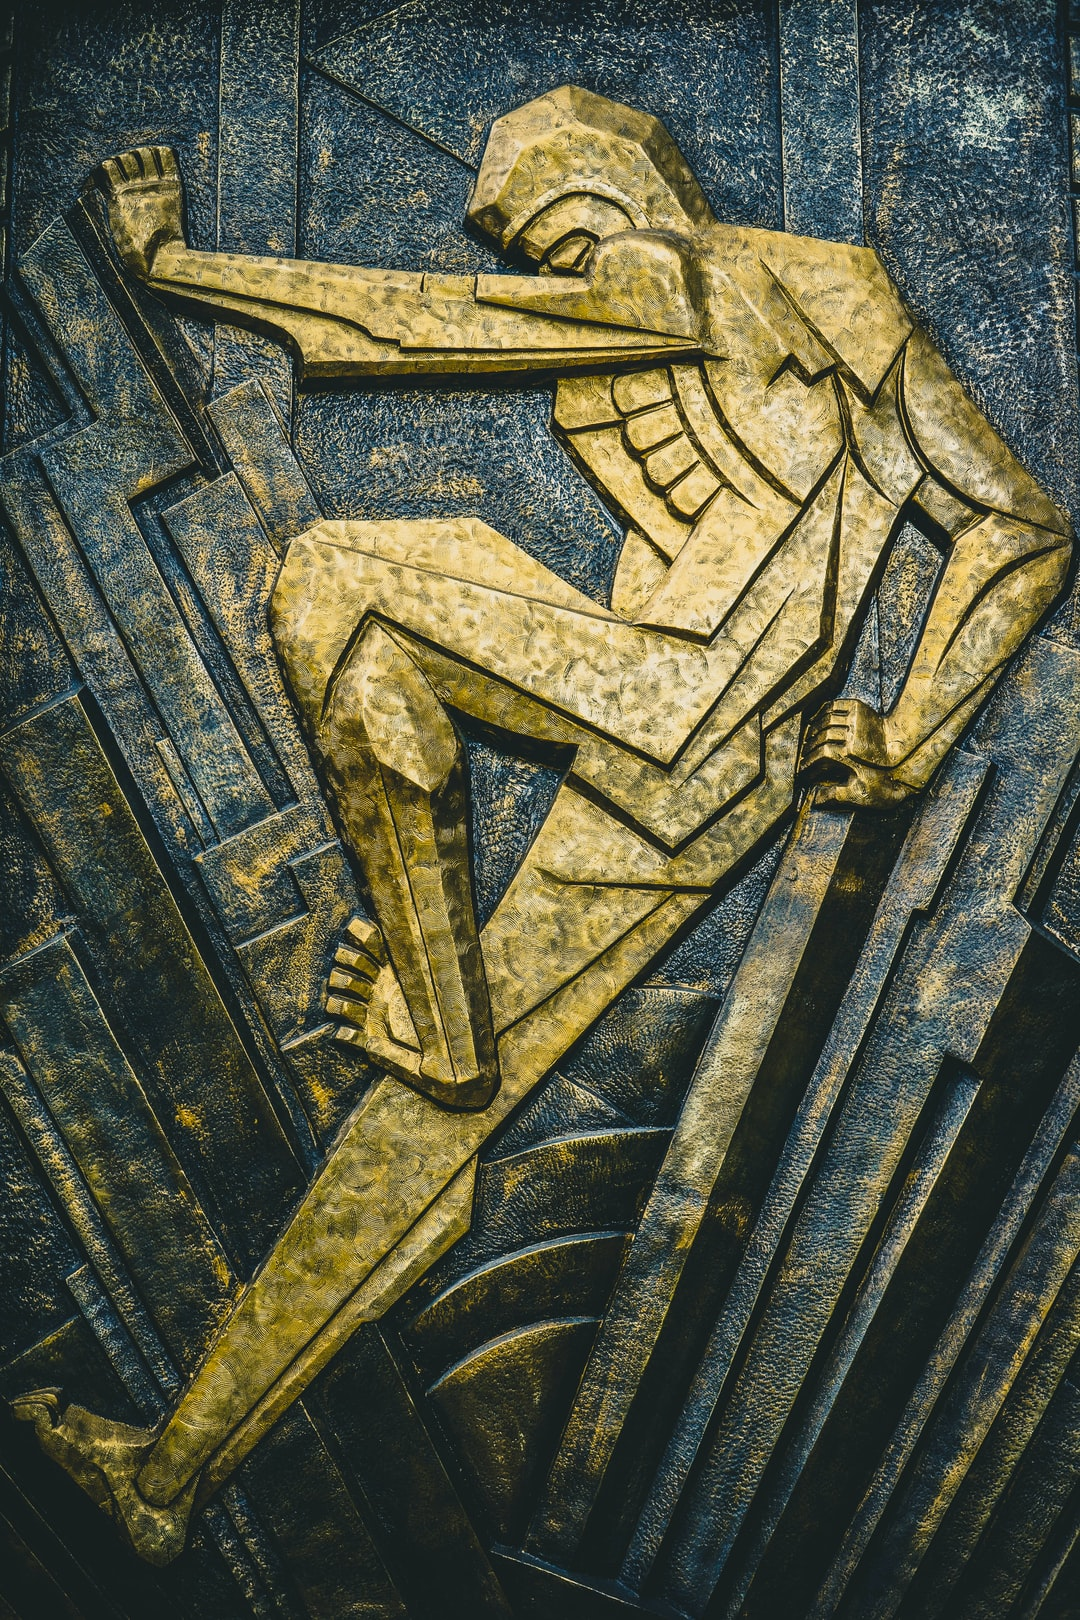 golden art deco statue photo by igor ovsyannykov igorovsyannykov on unsplash. Black Bedroom Furniture Sets. Home Design Ideas